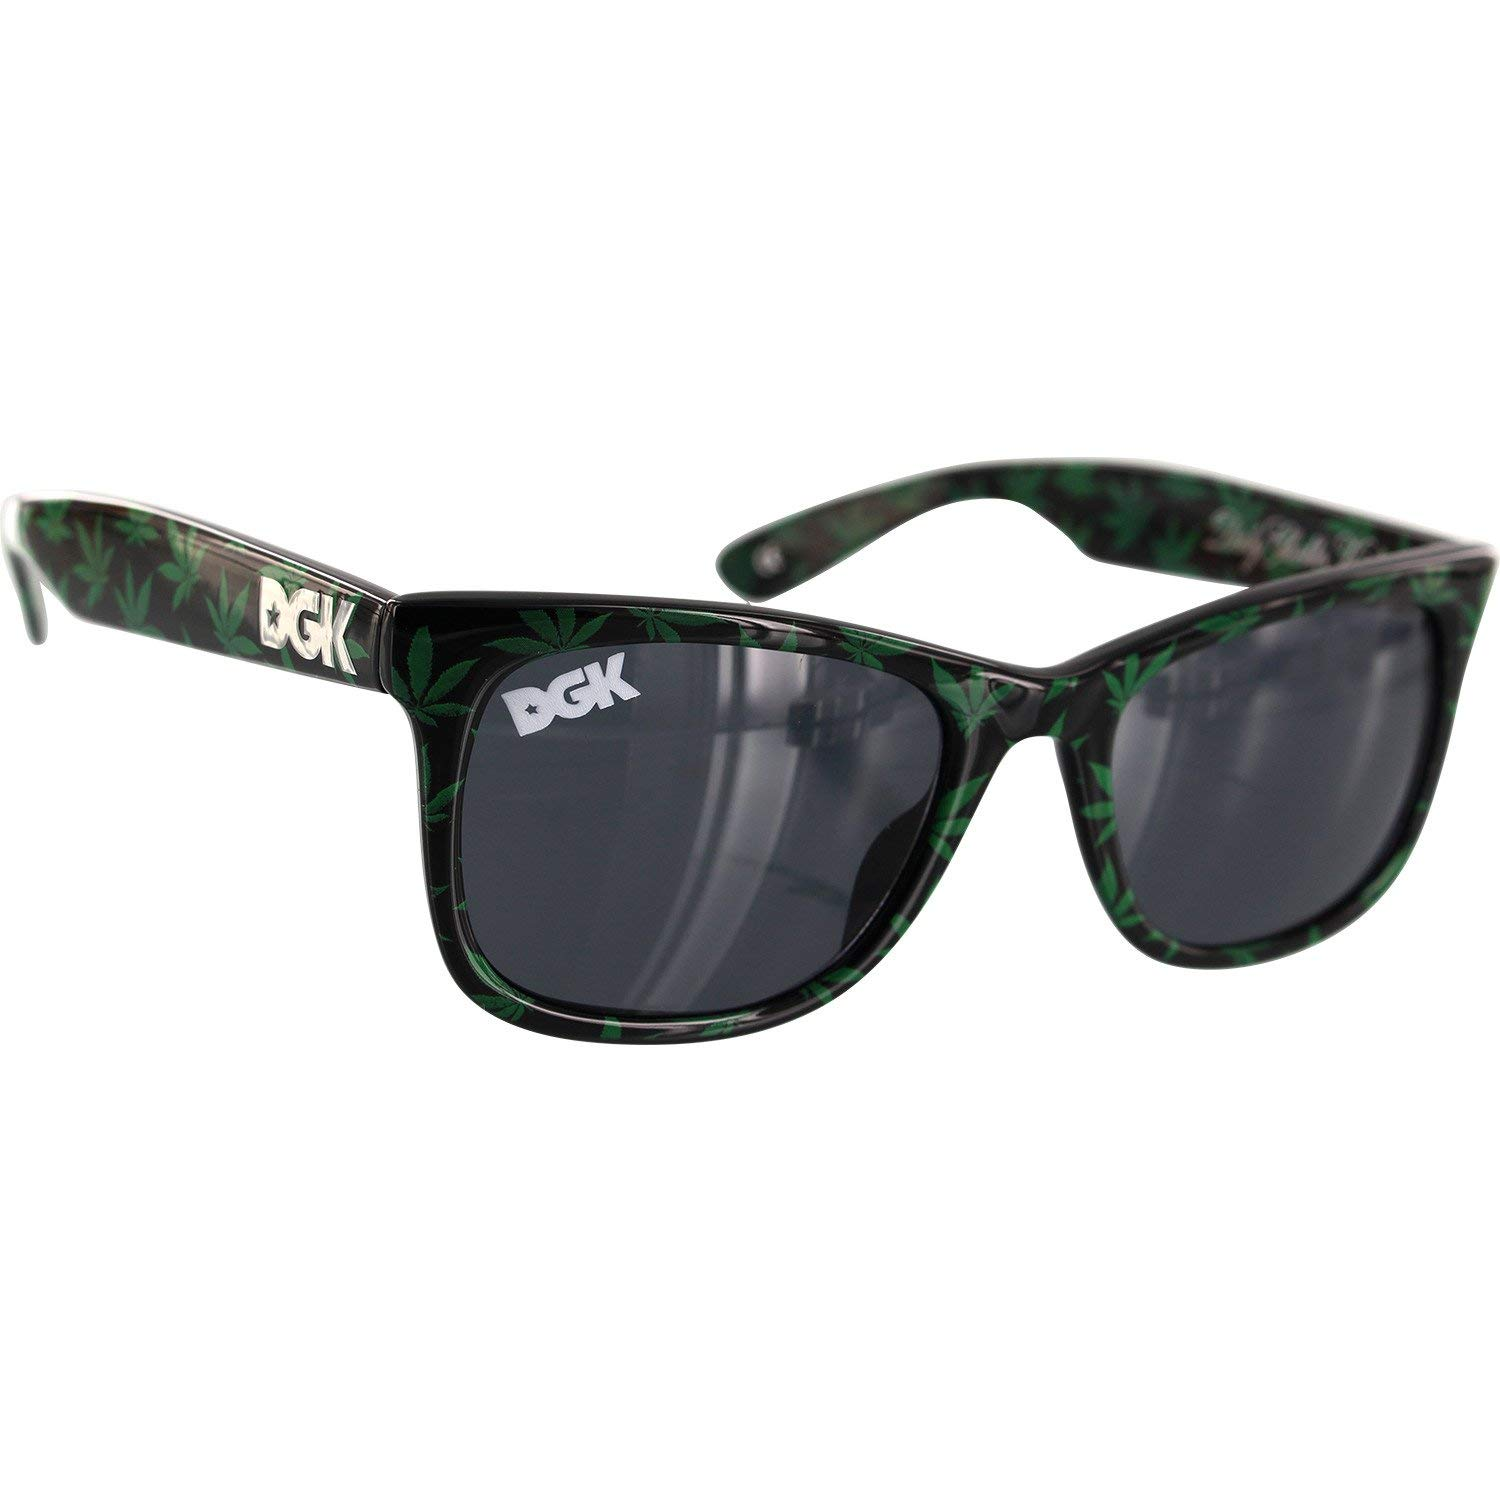 2fe3668994 Get Quotations · DGK Skateboards Classic Shades Leaf Black   Green  Sunglasses